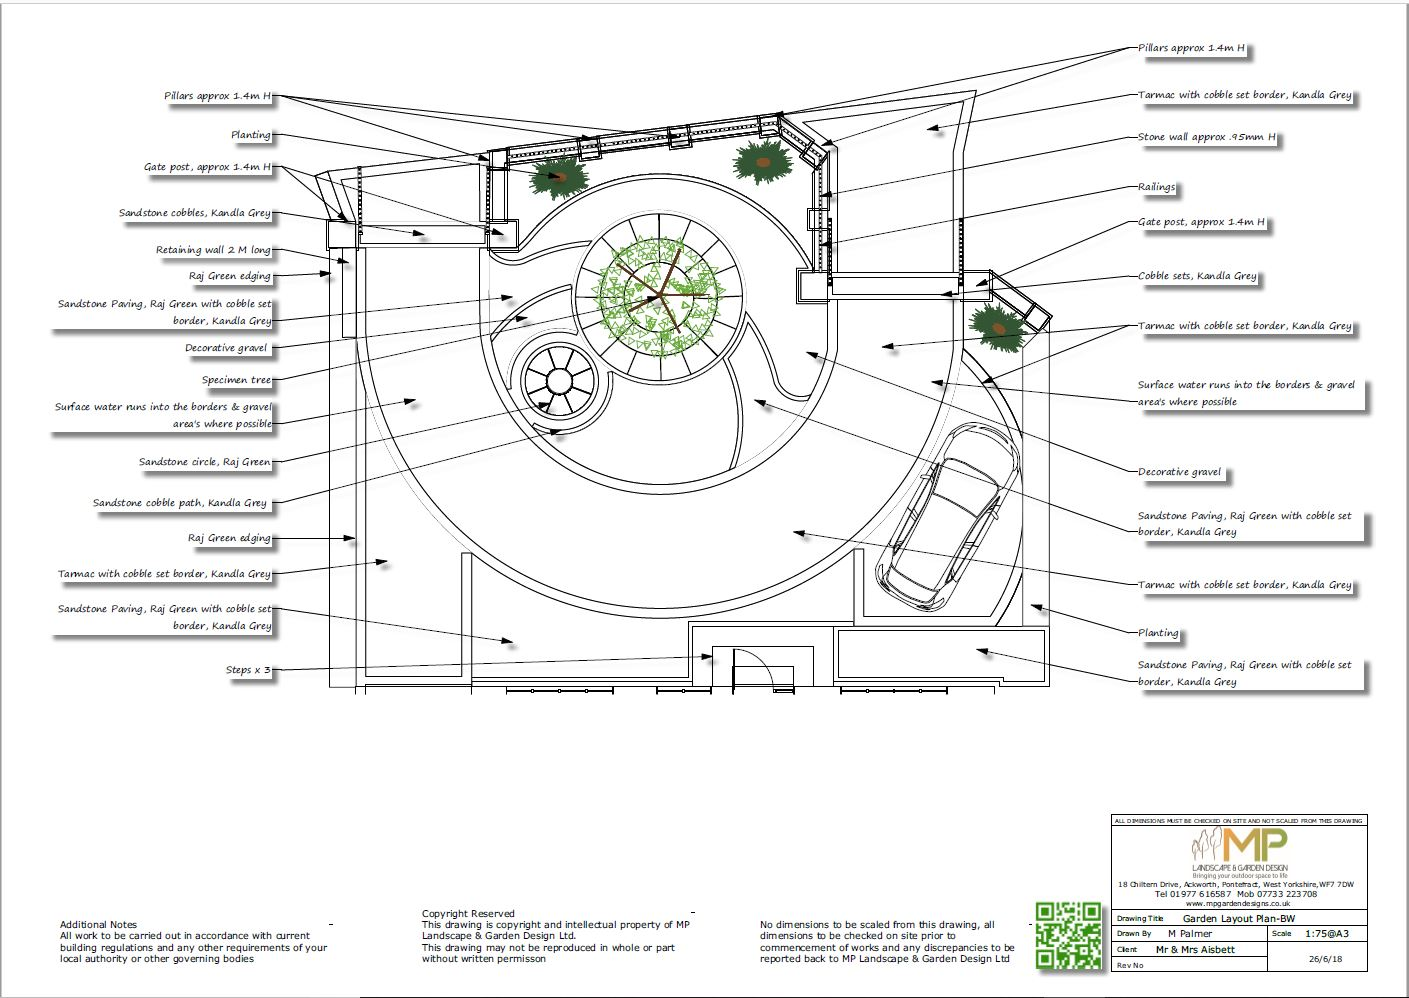 Font garden layout plans black and white for a prperty in Notton, Wakefield